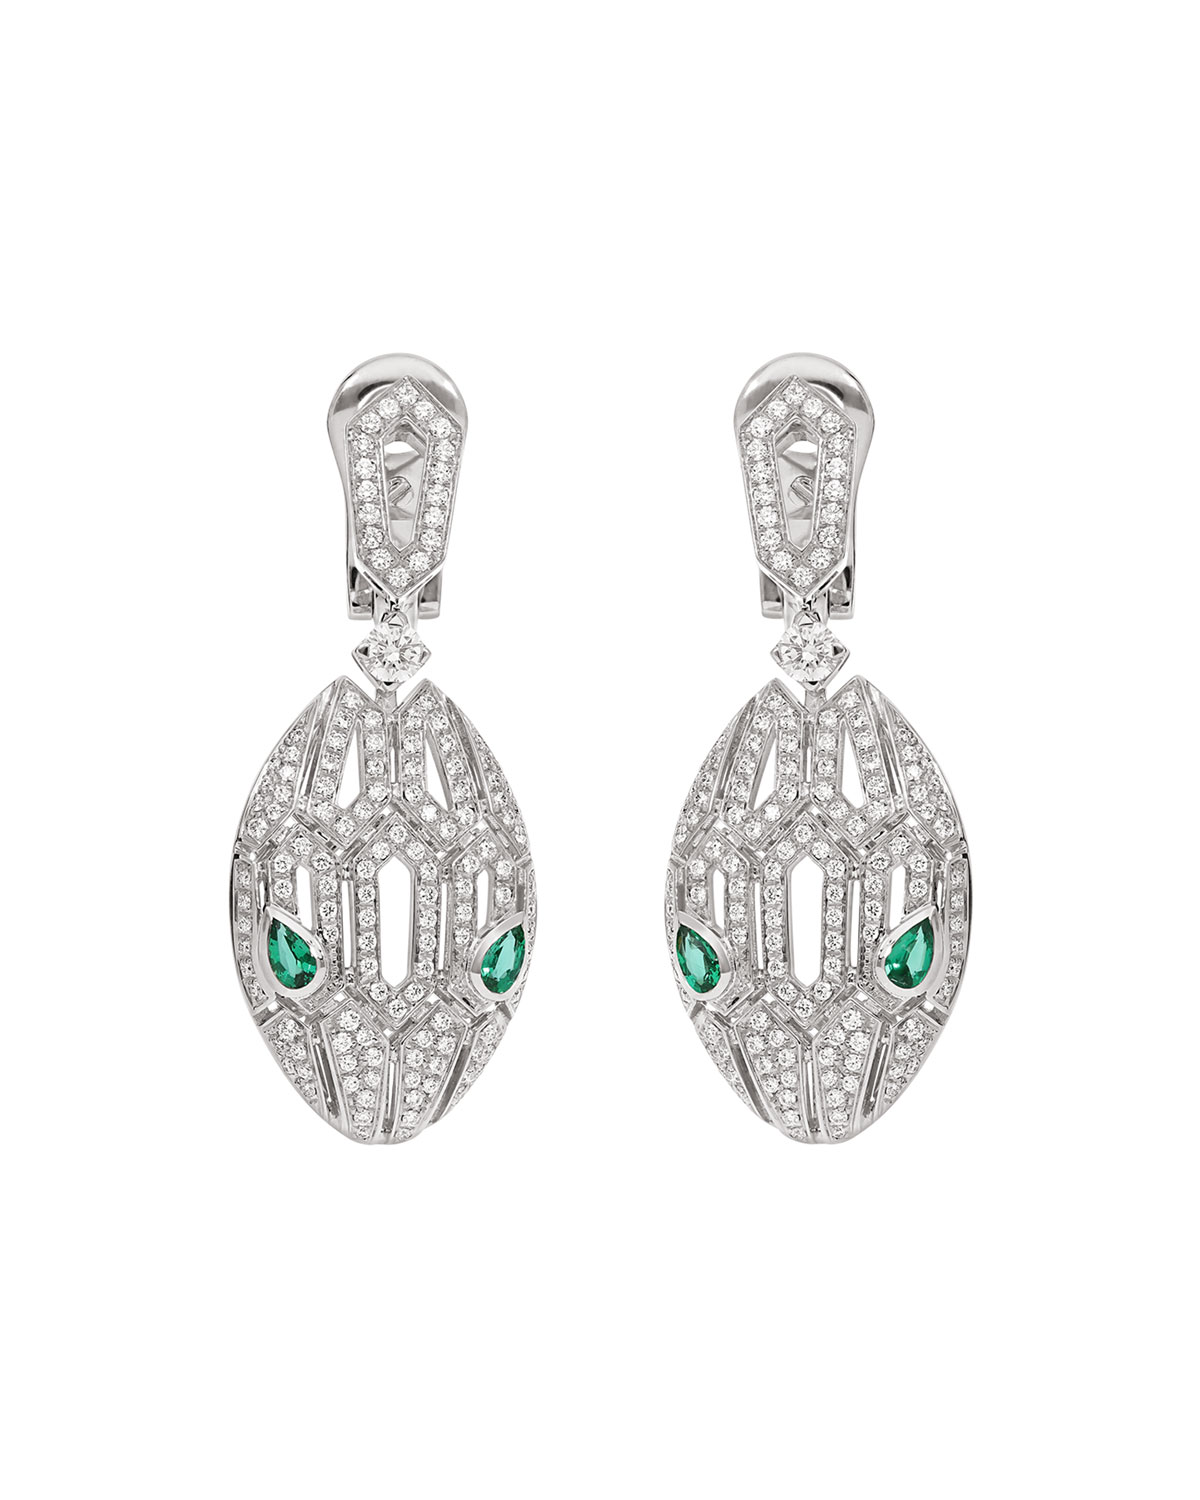 Serpenti Drop Earrings in 18k White Gold and Emeralds